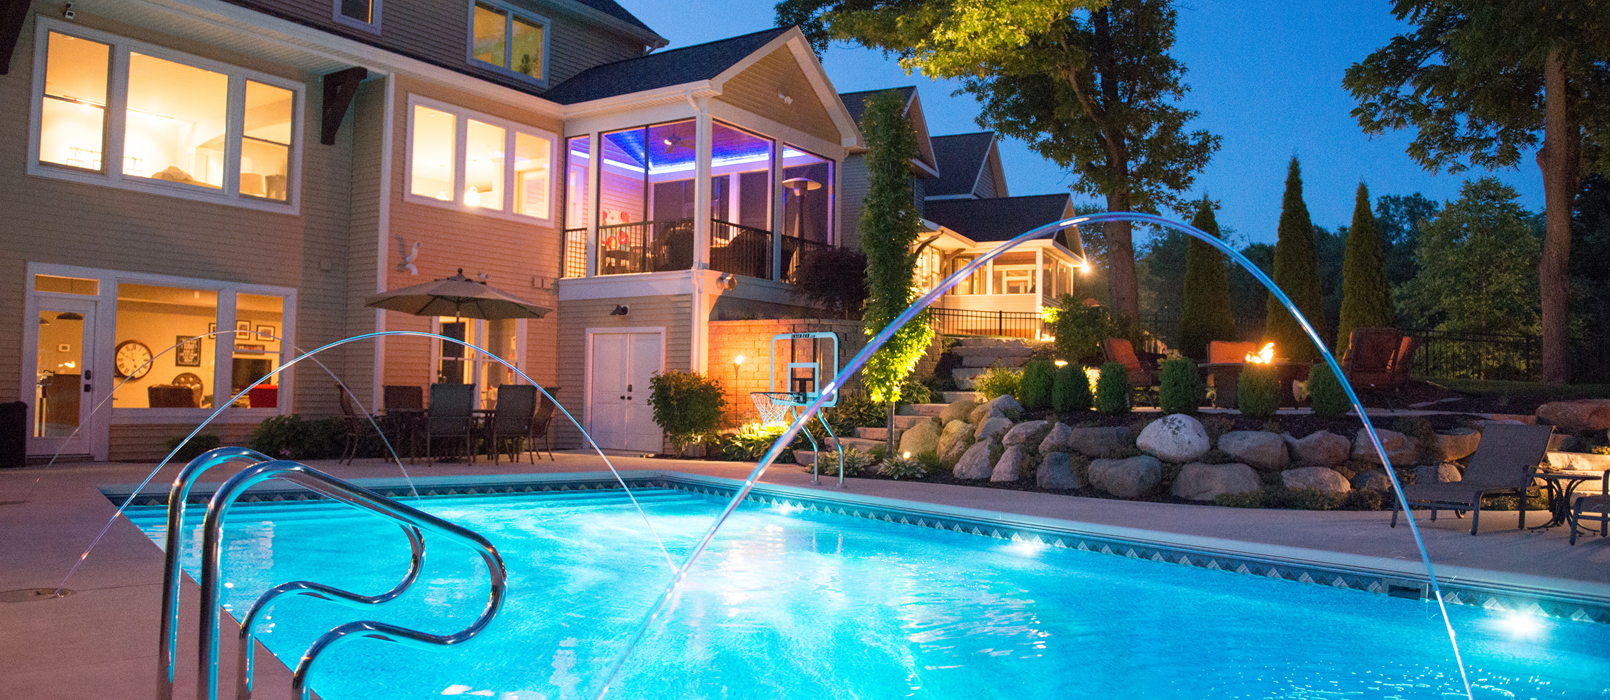 Lighting Amp Water Features Zagers Pool Amp Spa